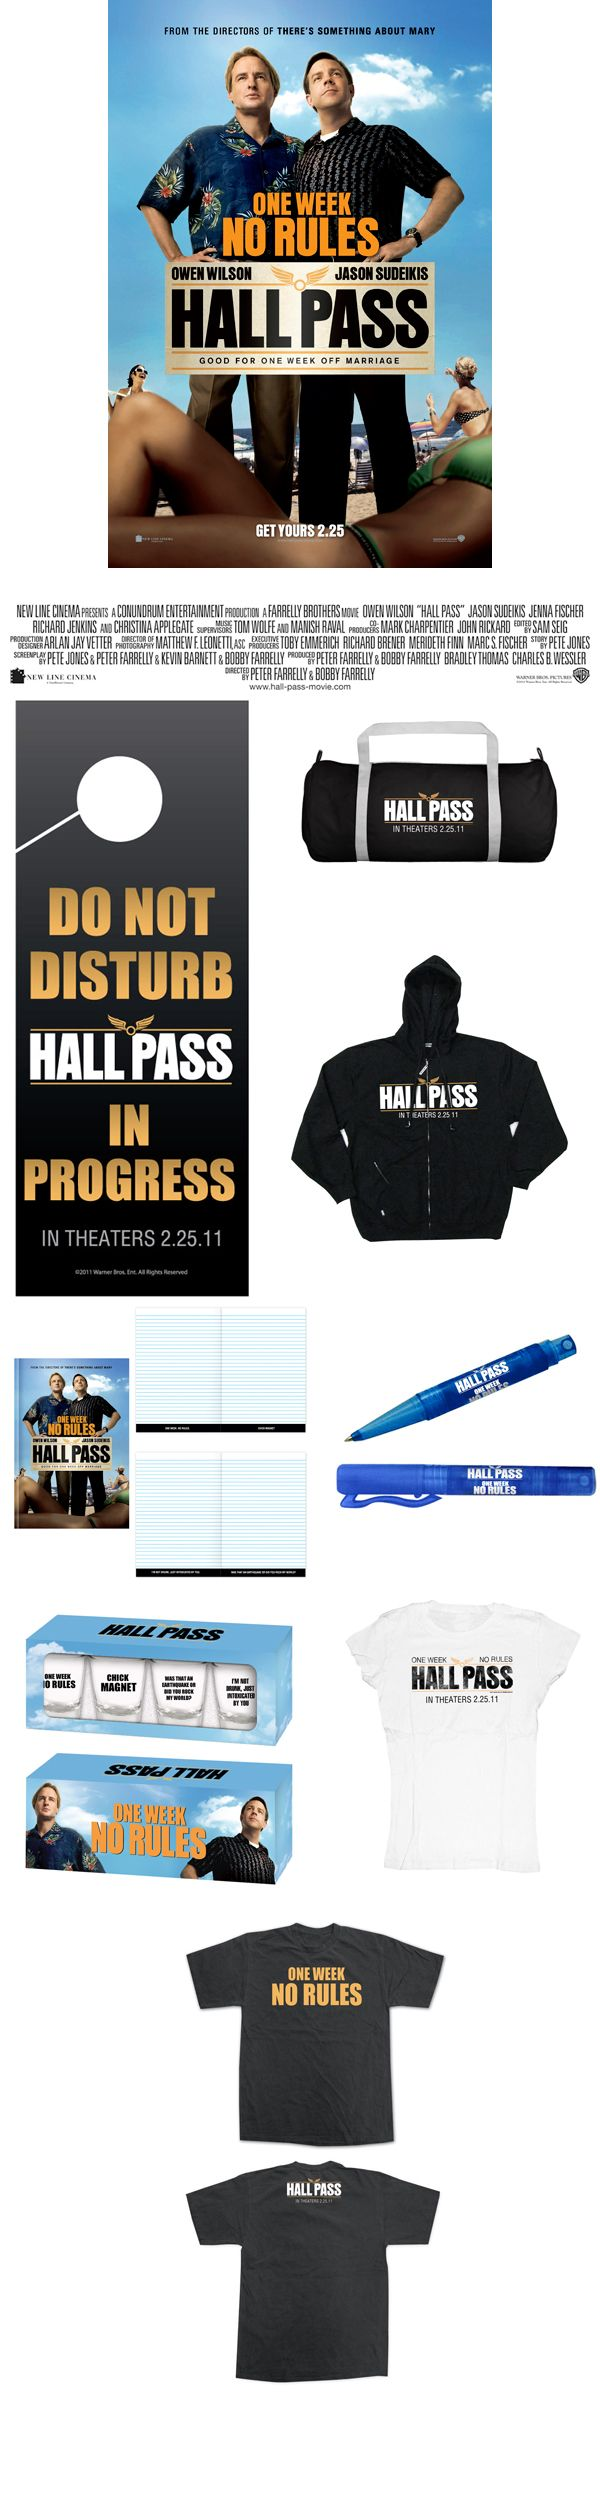 Hall Pass giveaway